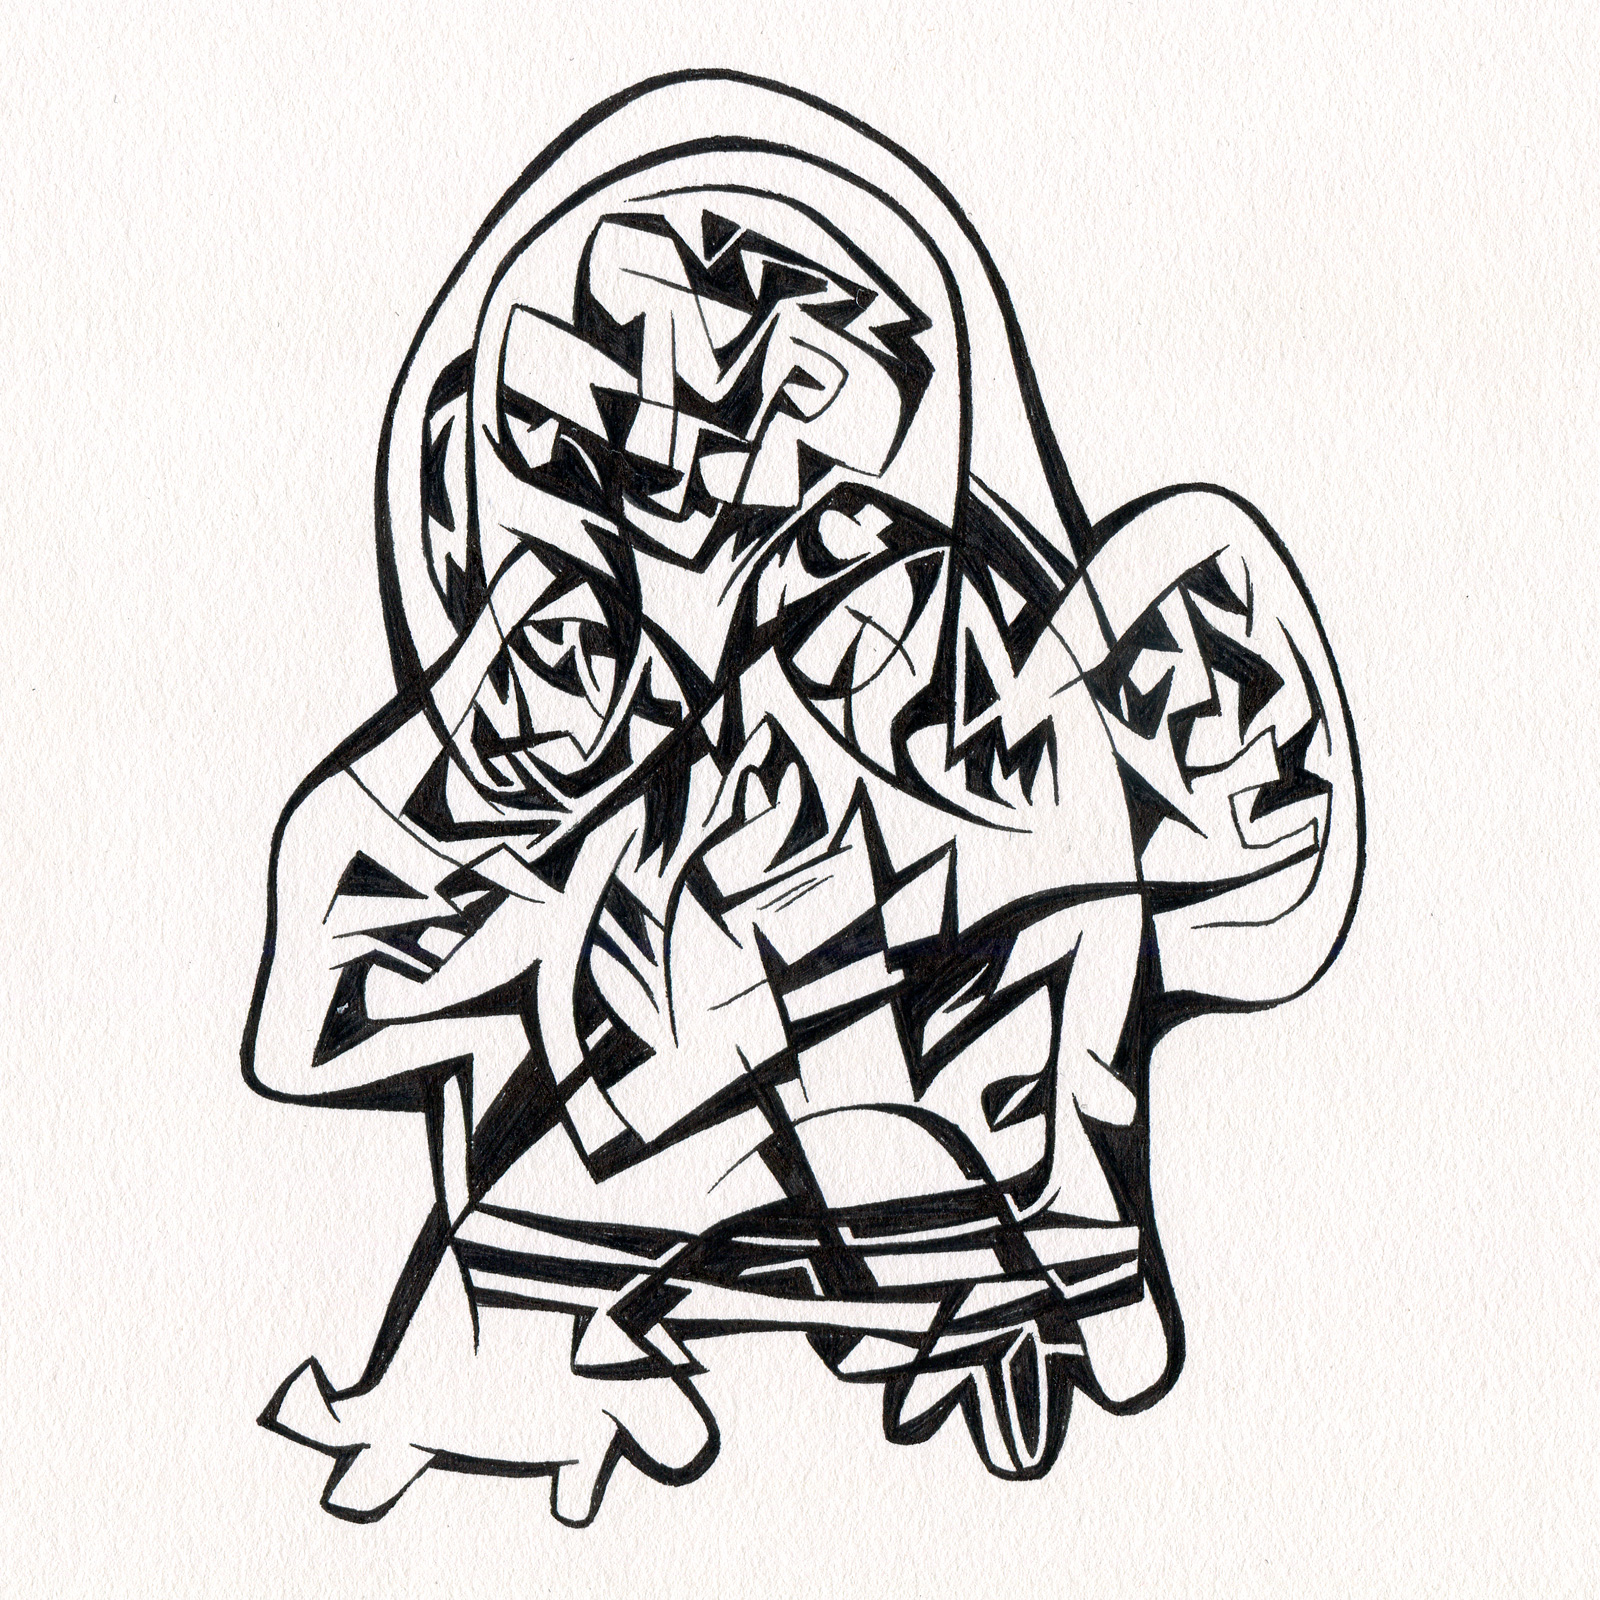 "Untitled Ink Drawing #104 , 2015. Ink on paper. Approximately 5"" x 5""."